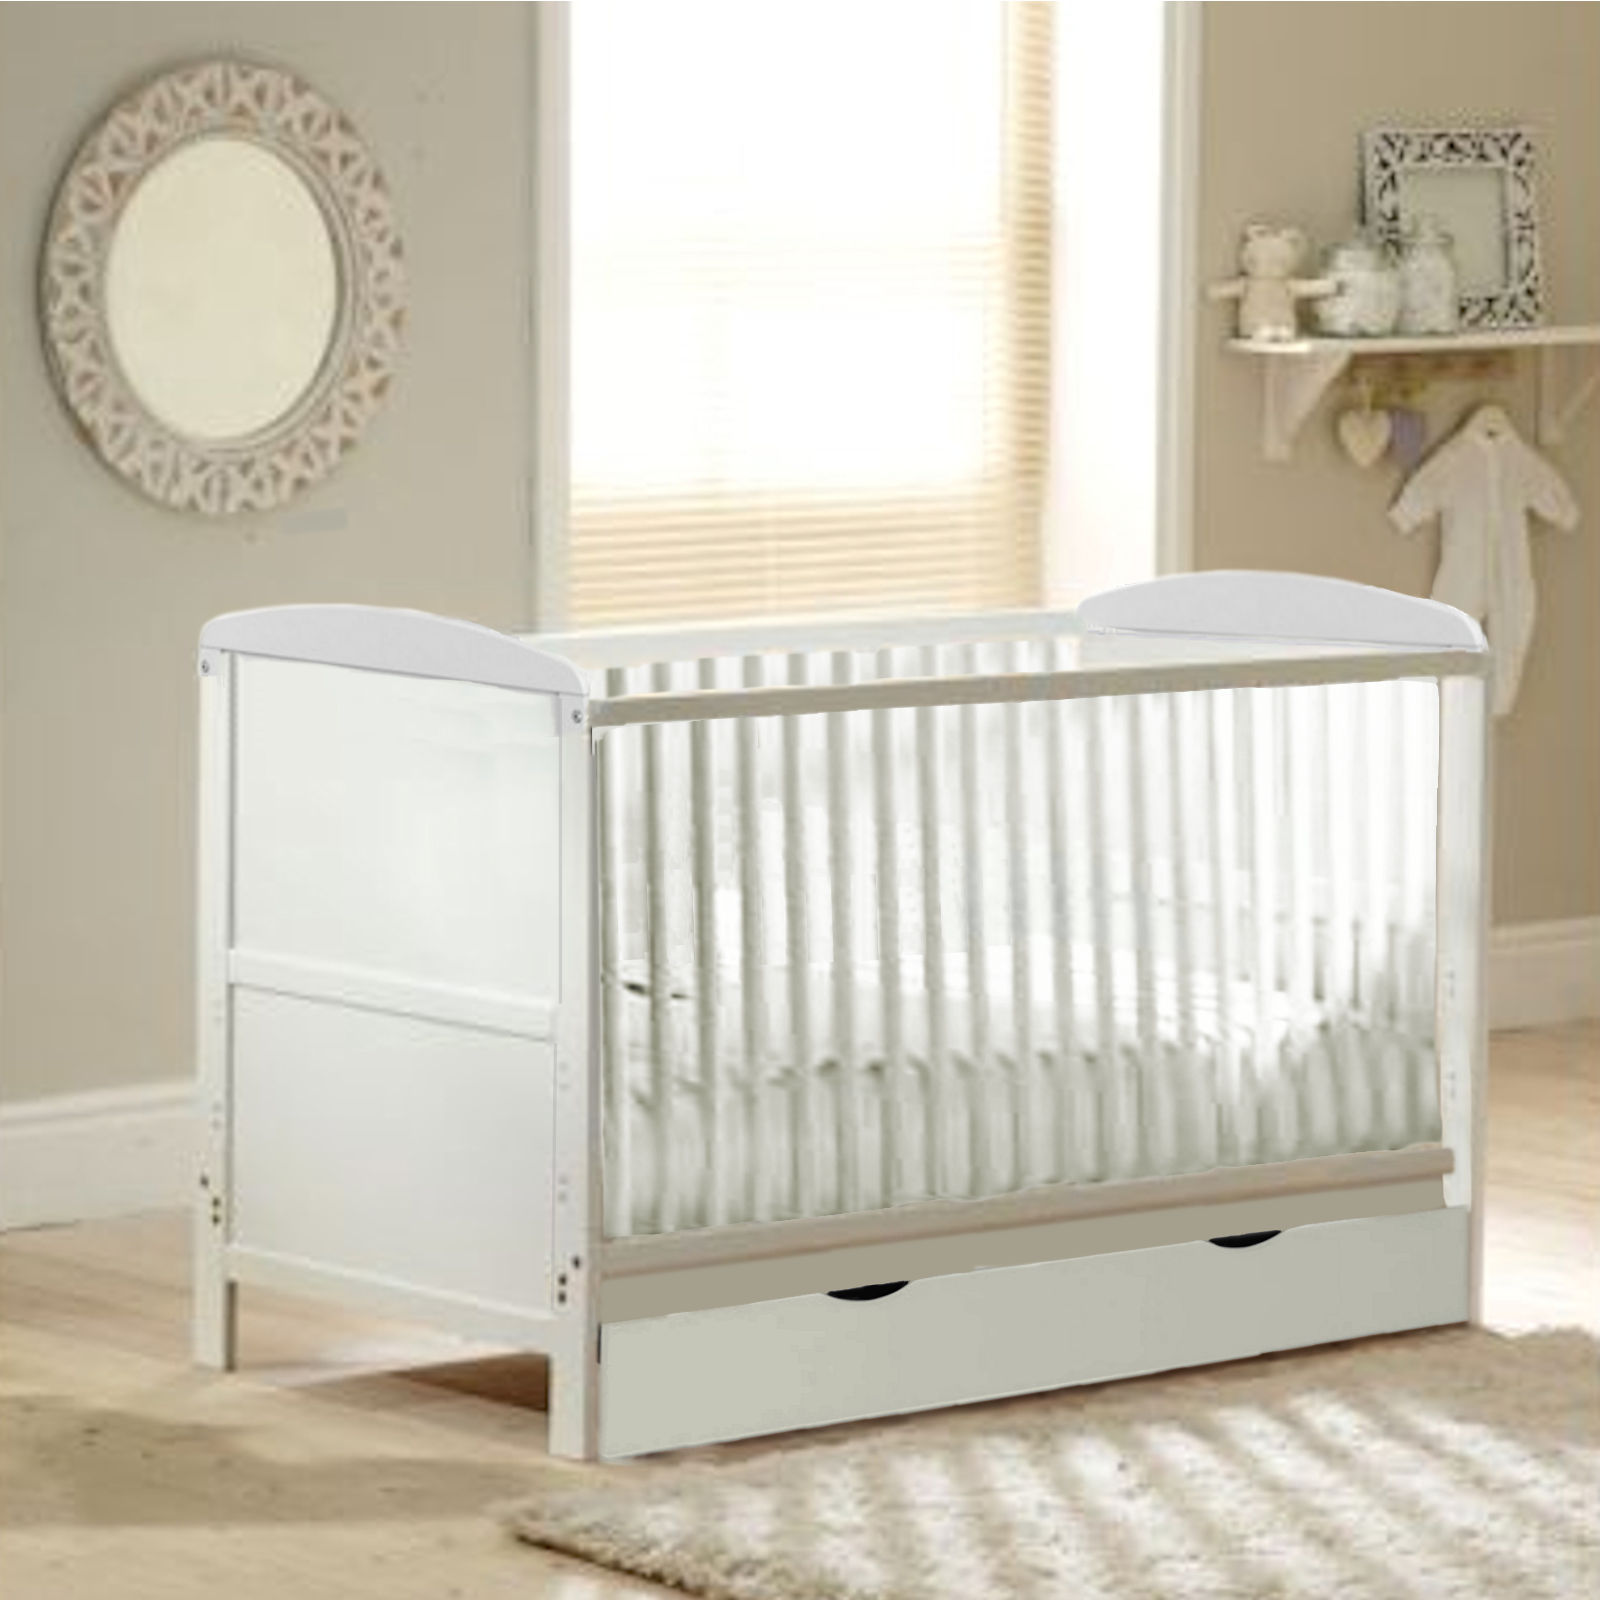 Baby Classic Cot Bed With Drawer Deluxe Foam Mattress White